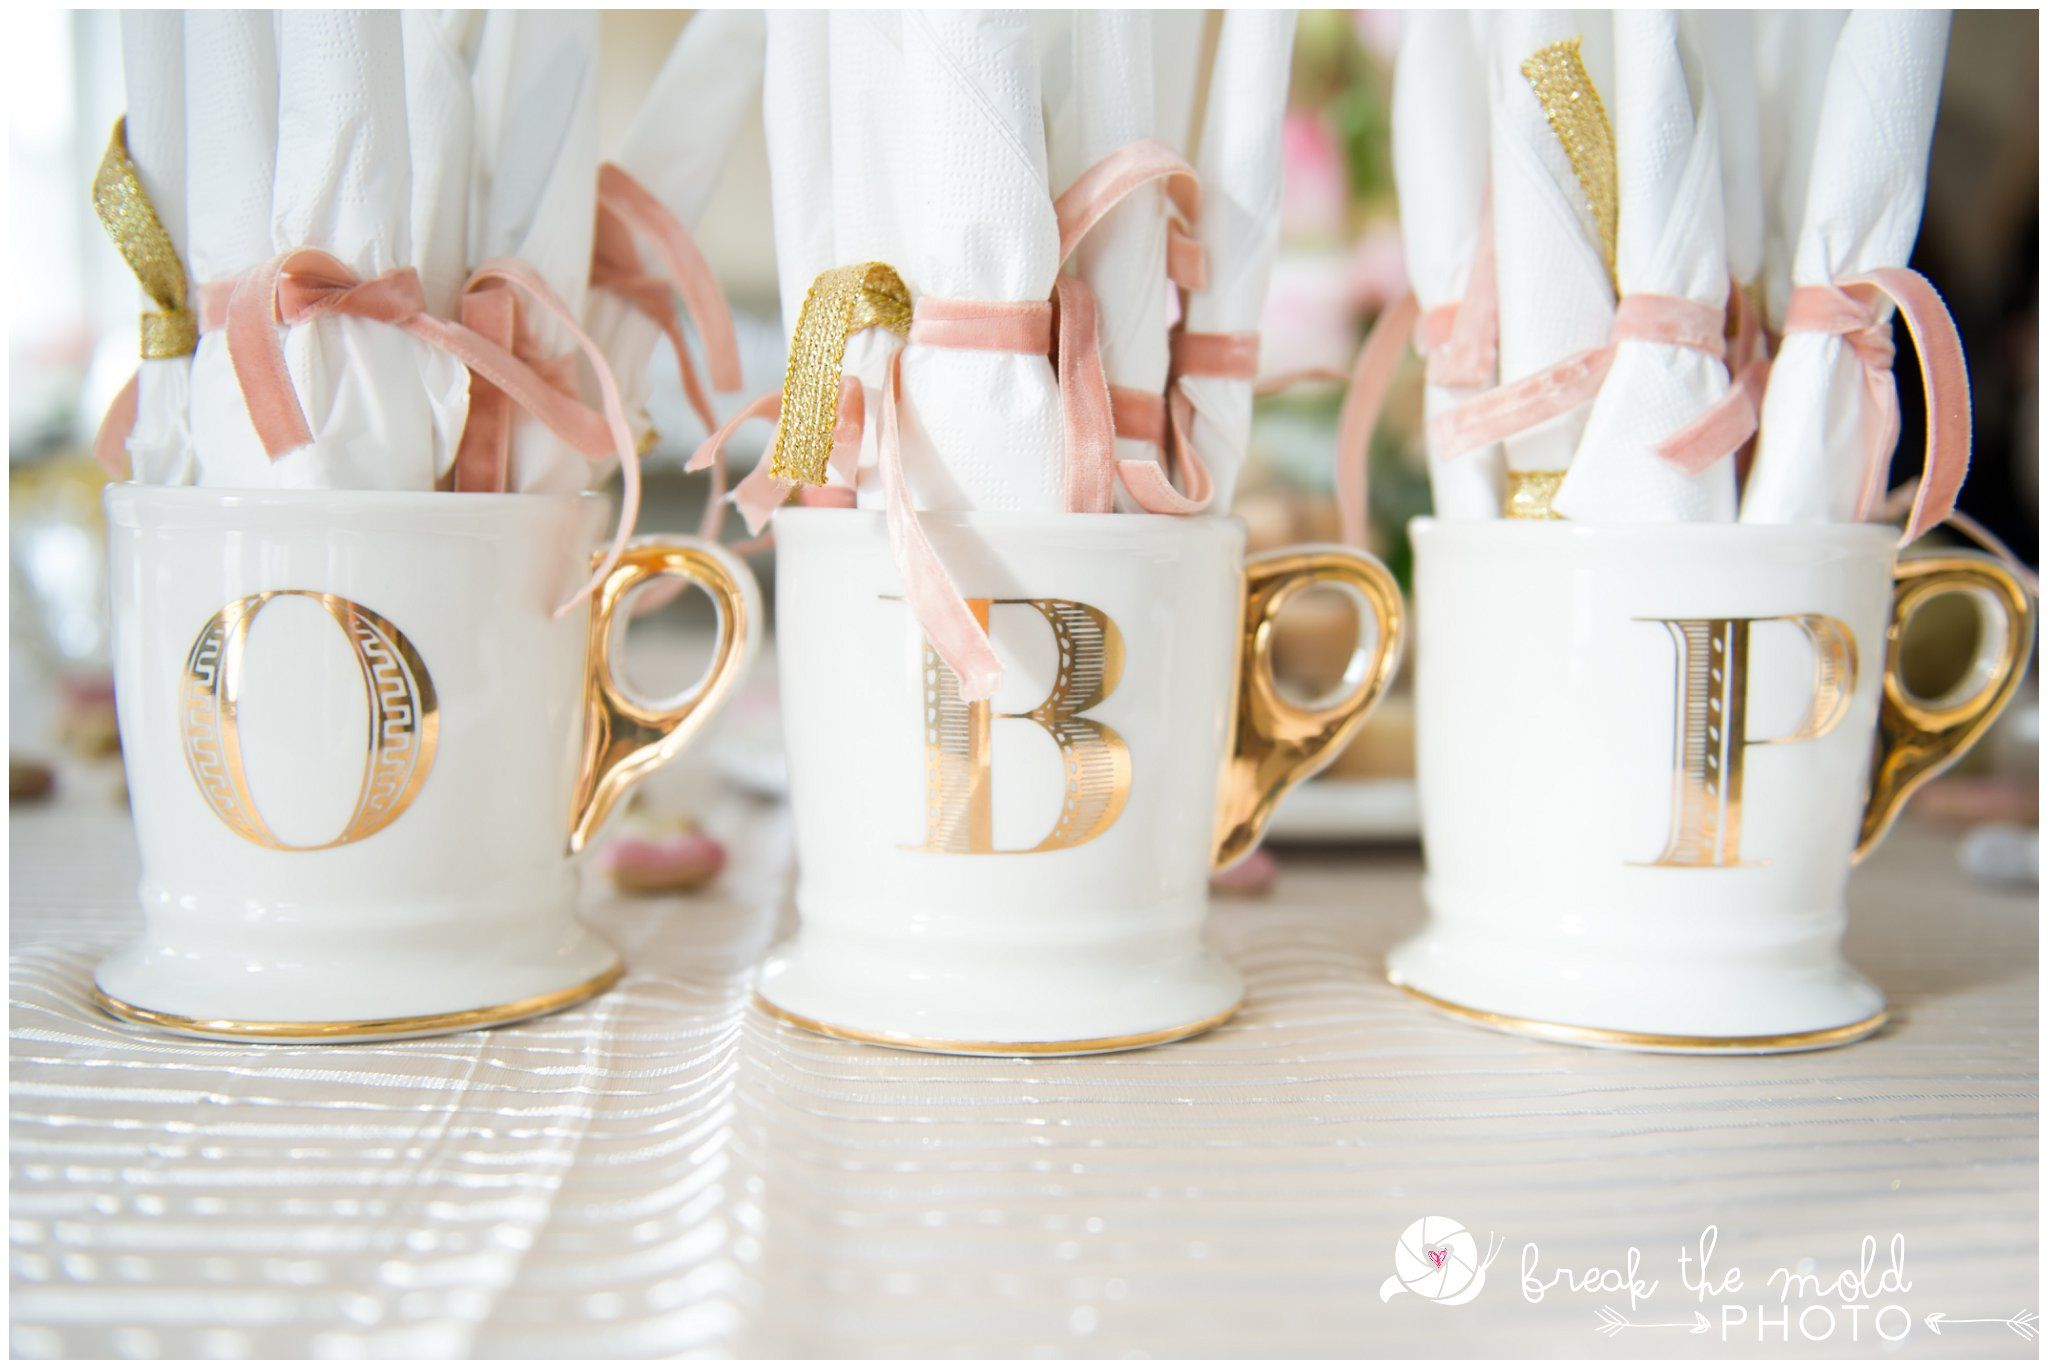 a mad men baby shower letter mugs from anthropologie to hold silverware for baby shower